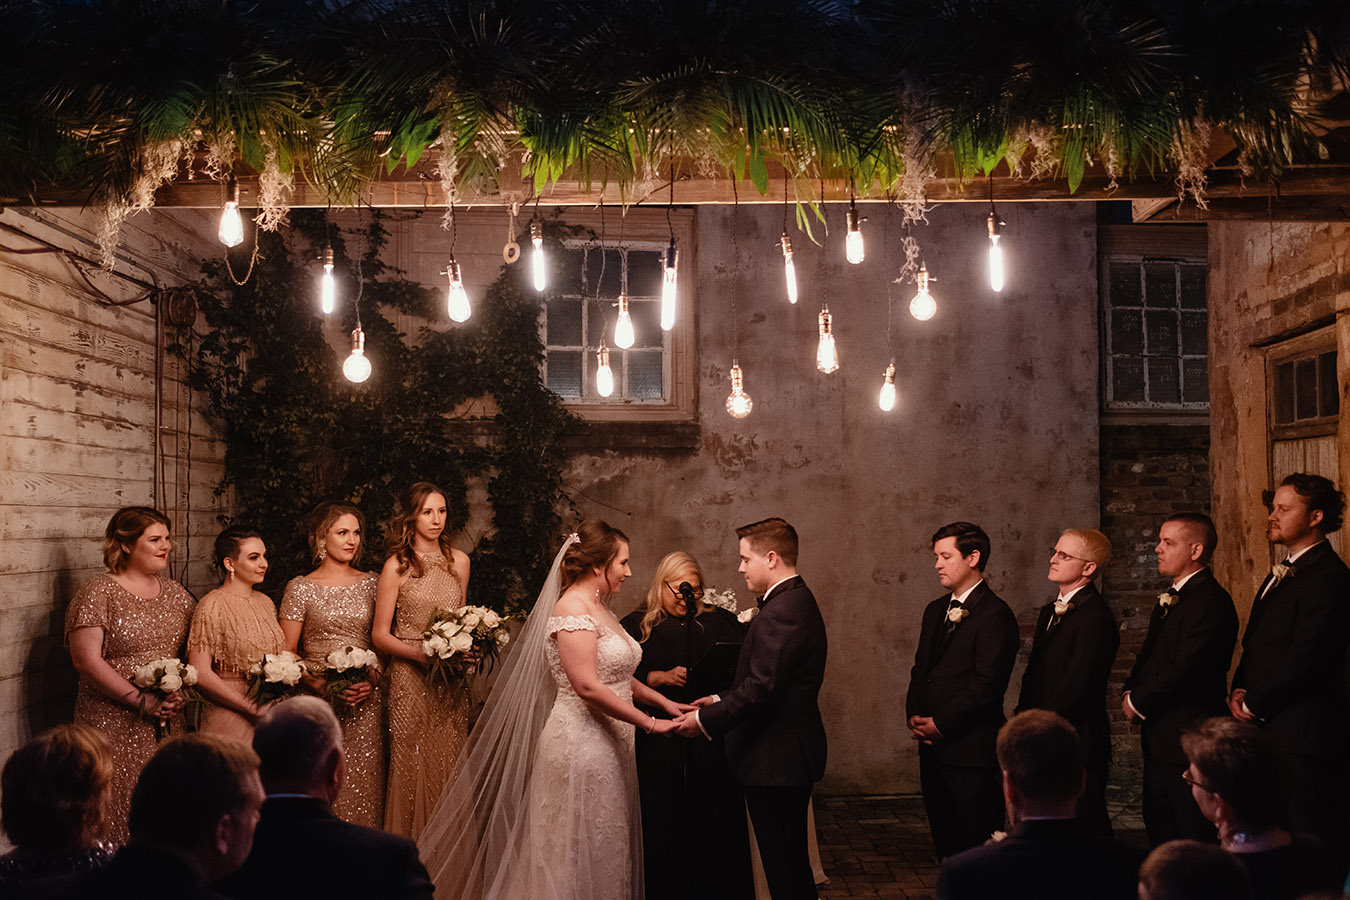 REAL WEDDING:: JEANNE SWITZER + DAN SANCHEZ {Meant To Be Loved Bayou}